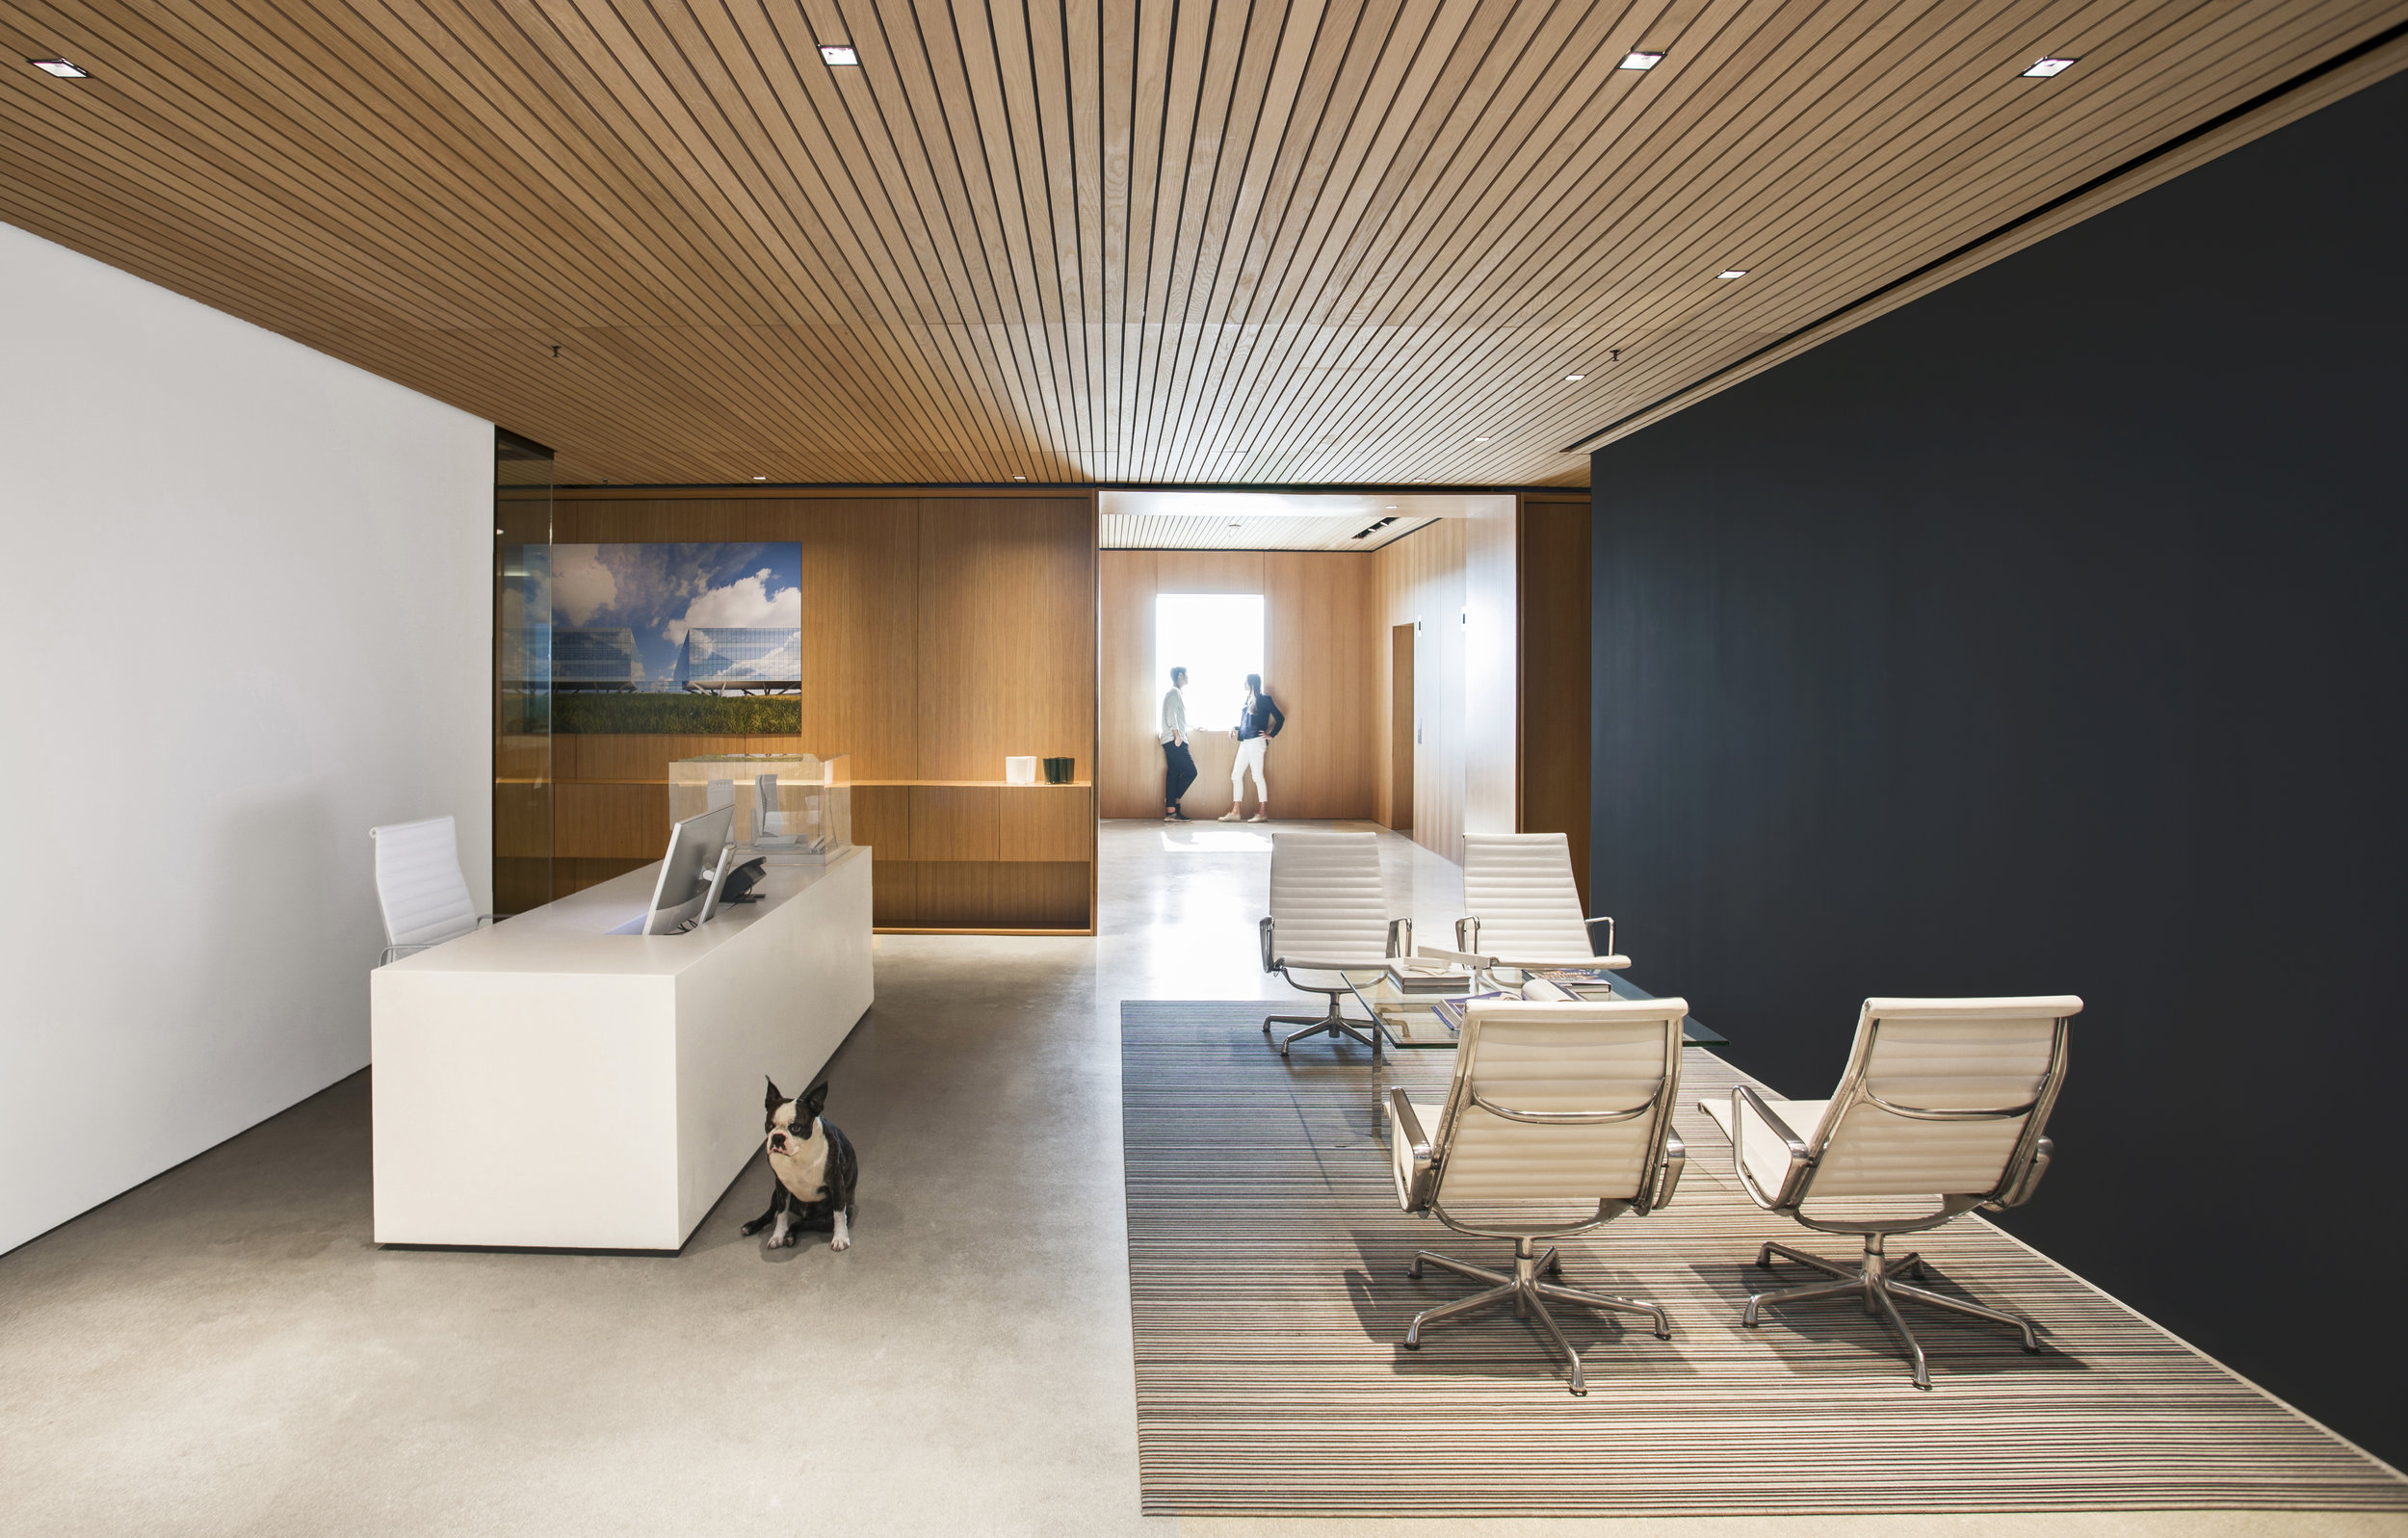 Perkins+Will's Opens New Miami Studio Showcasing Award-Winning Design In Coral Gables